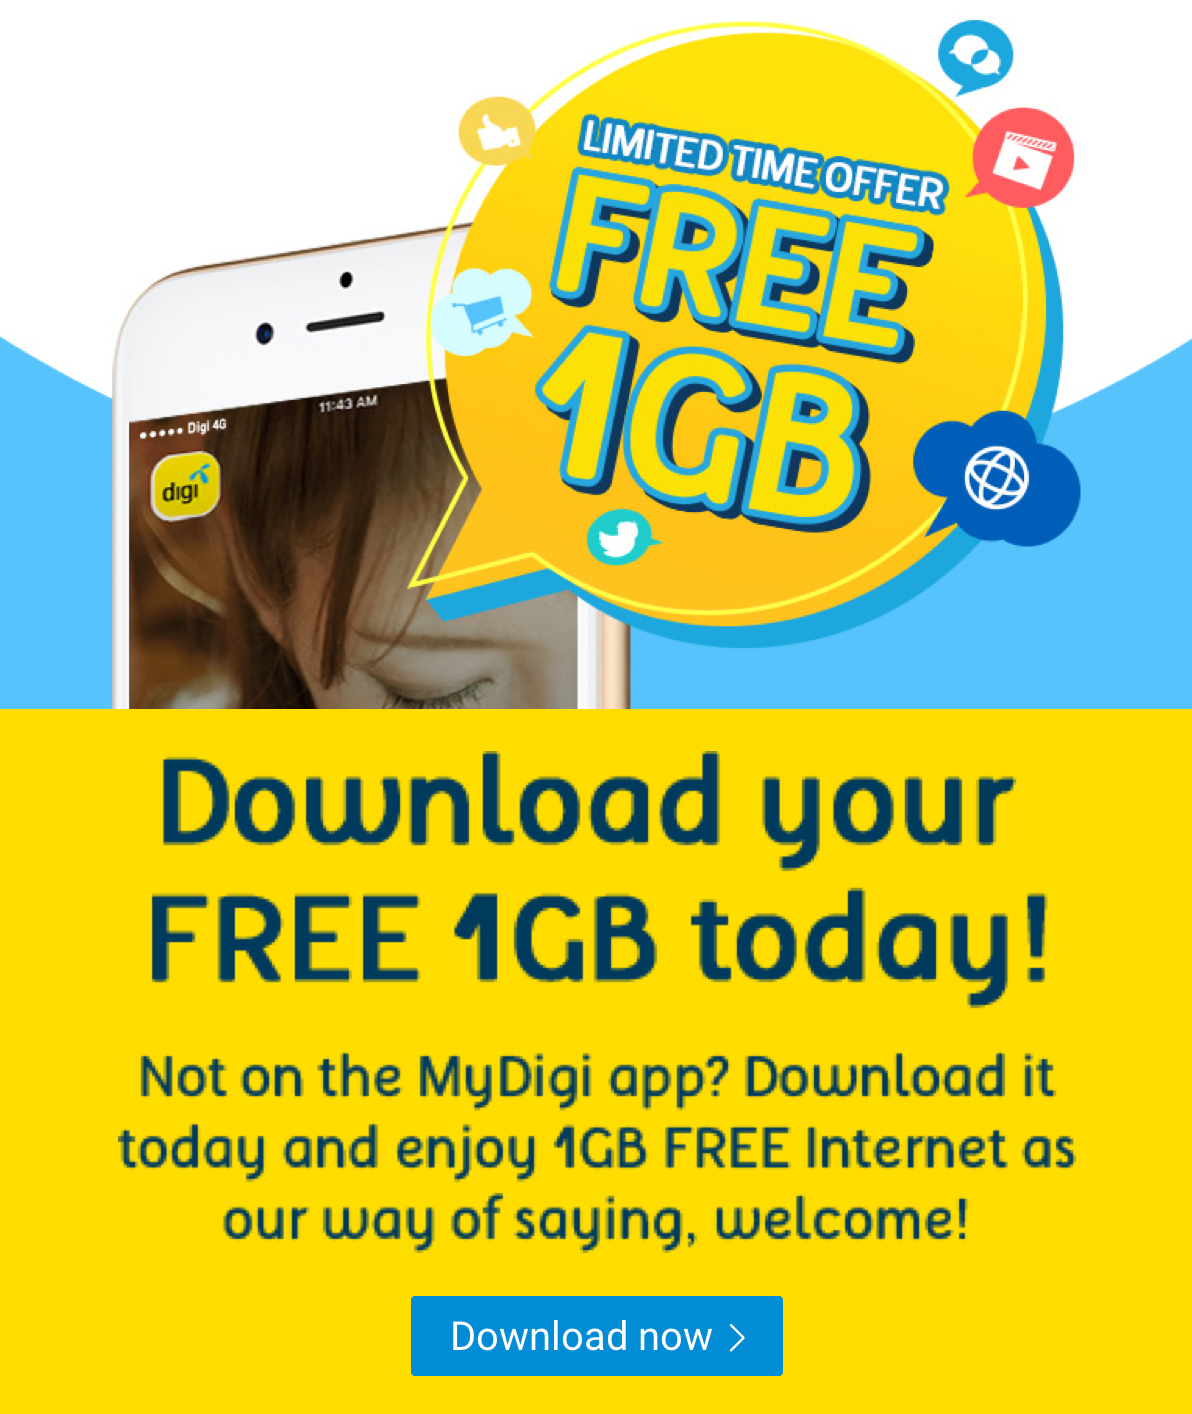 FREE 1GB Internet When You Download MyDigi App (First Time User Only)